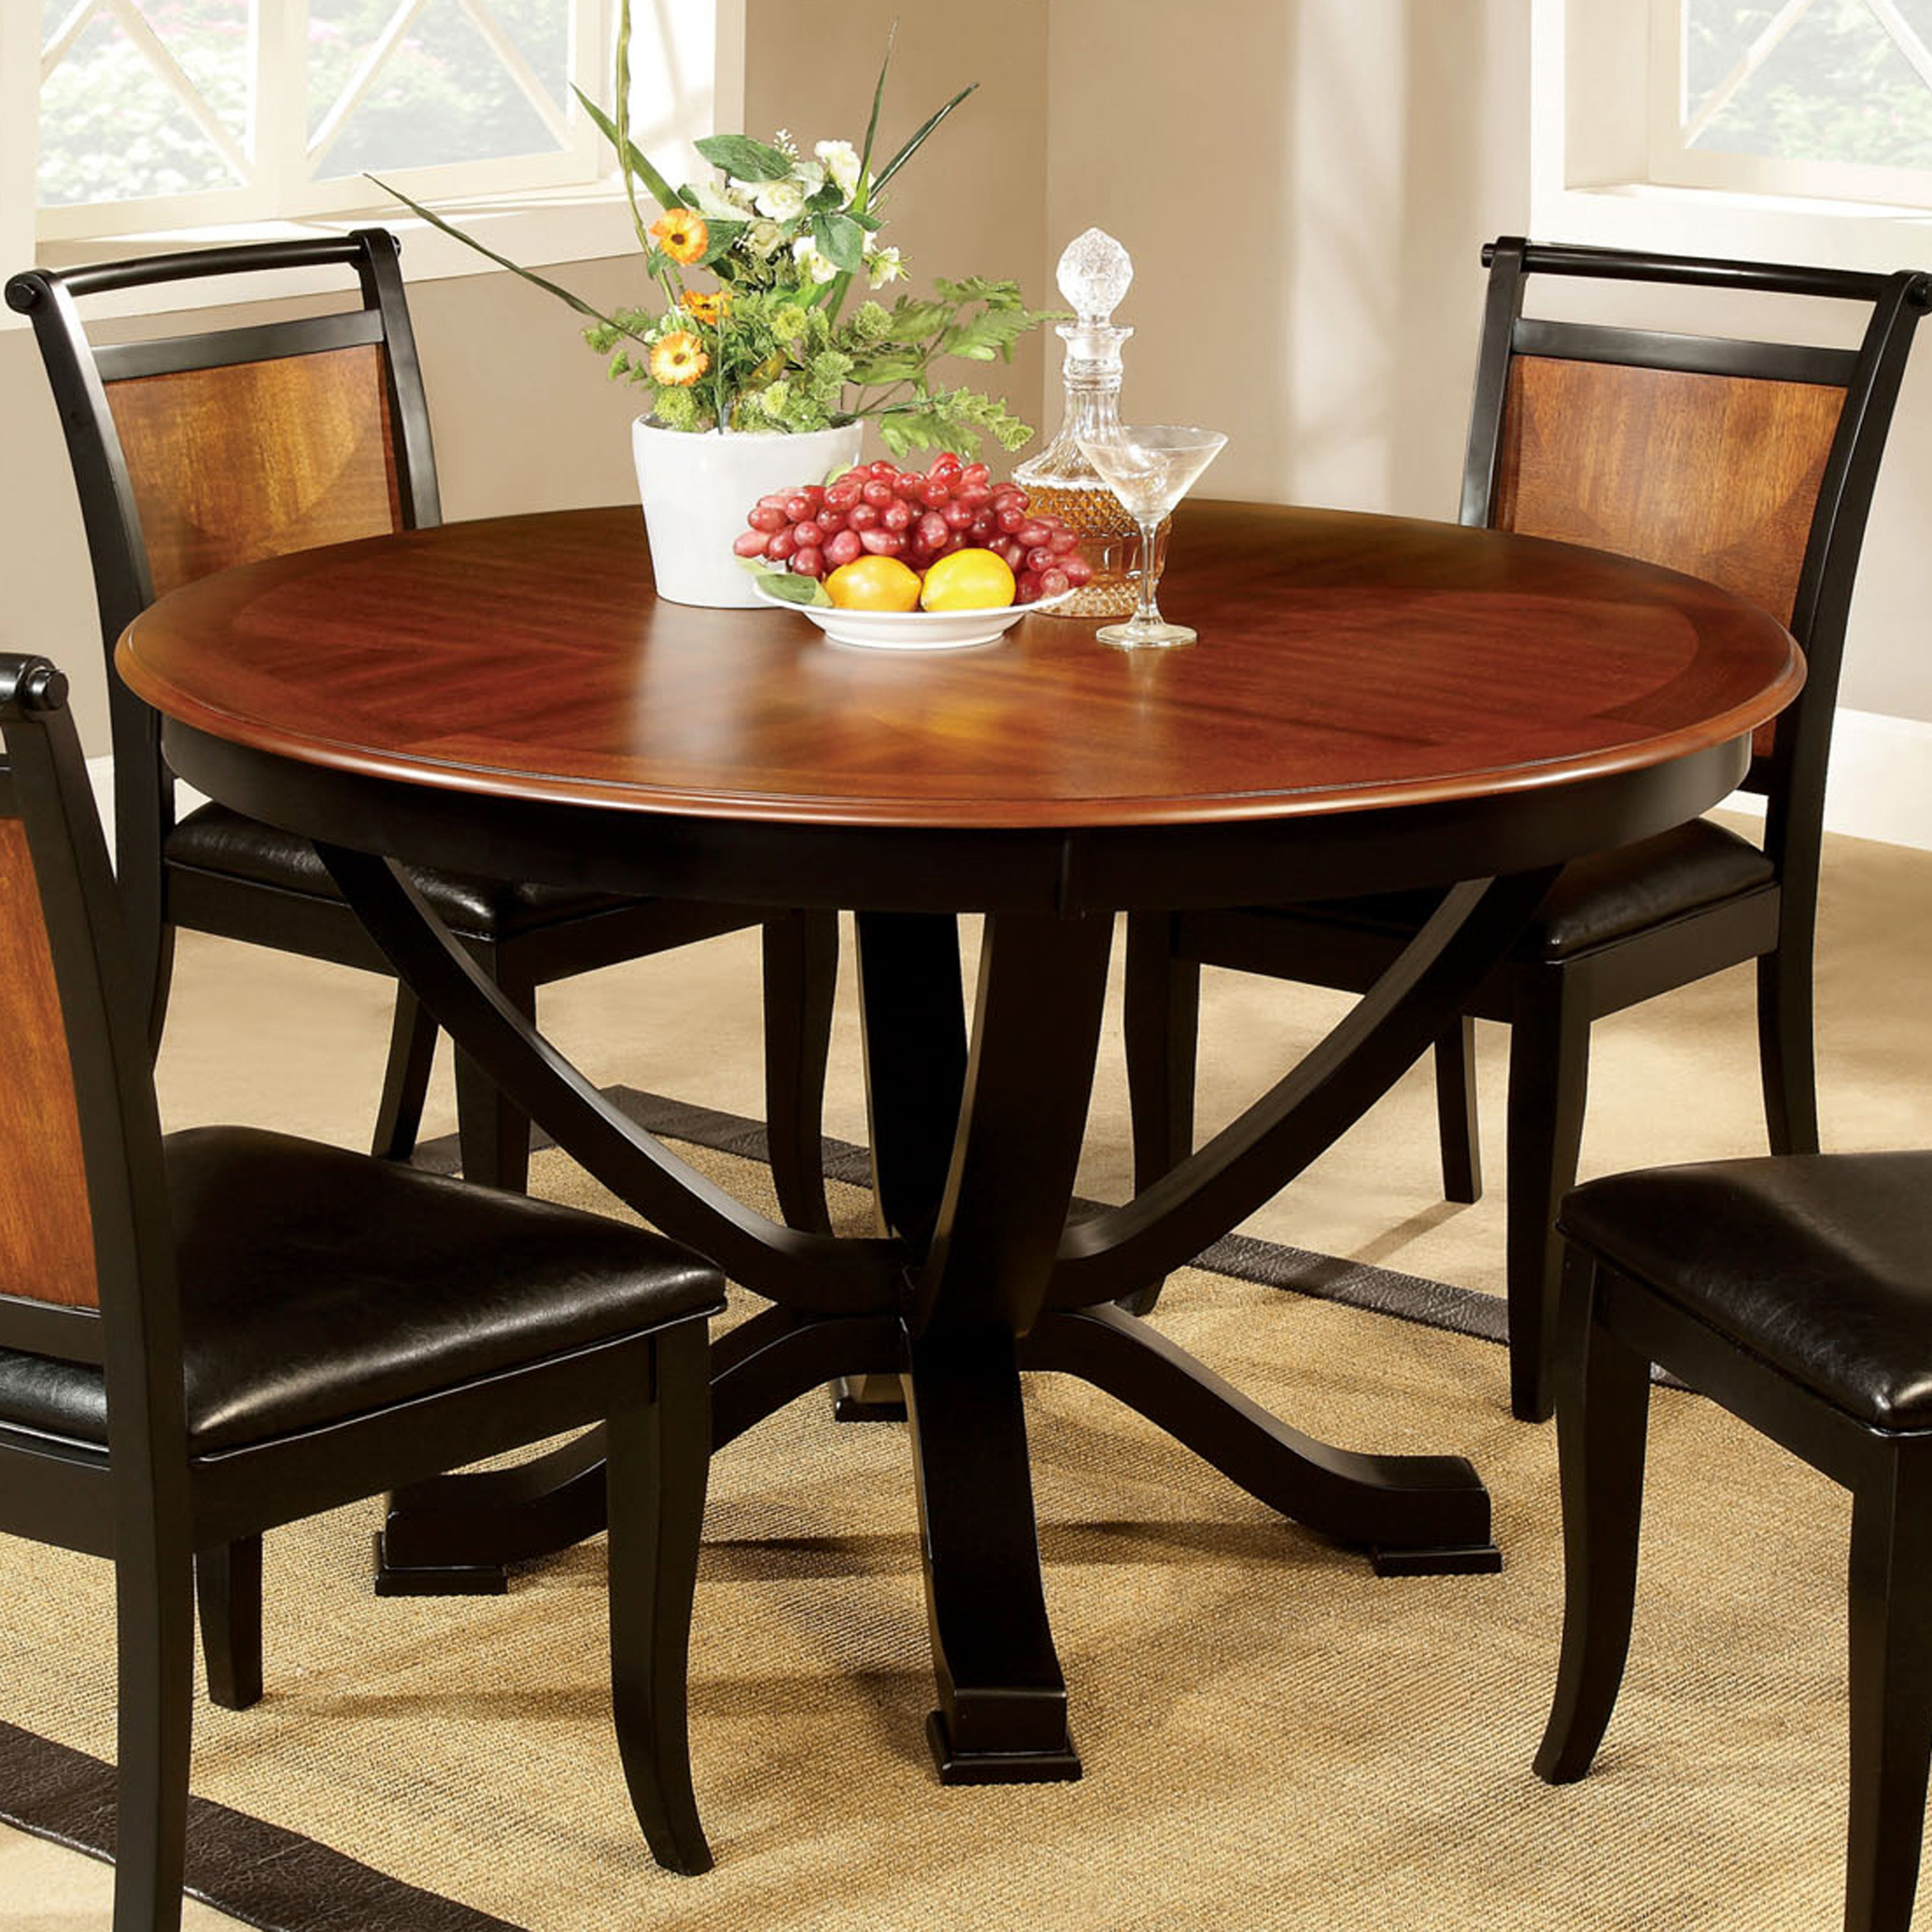 Furniture Of America Lyda Transitional Black Acacia Round Pedestal Dining Table – Oak Inside Newest Biggs 5 Piece Counter Height Solid Wood Dining Sets (set Of 5) (View 9 of 20)